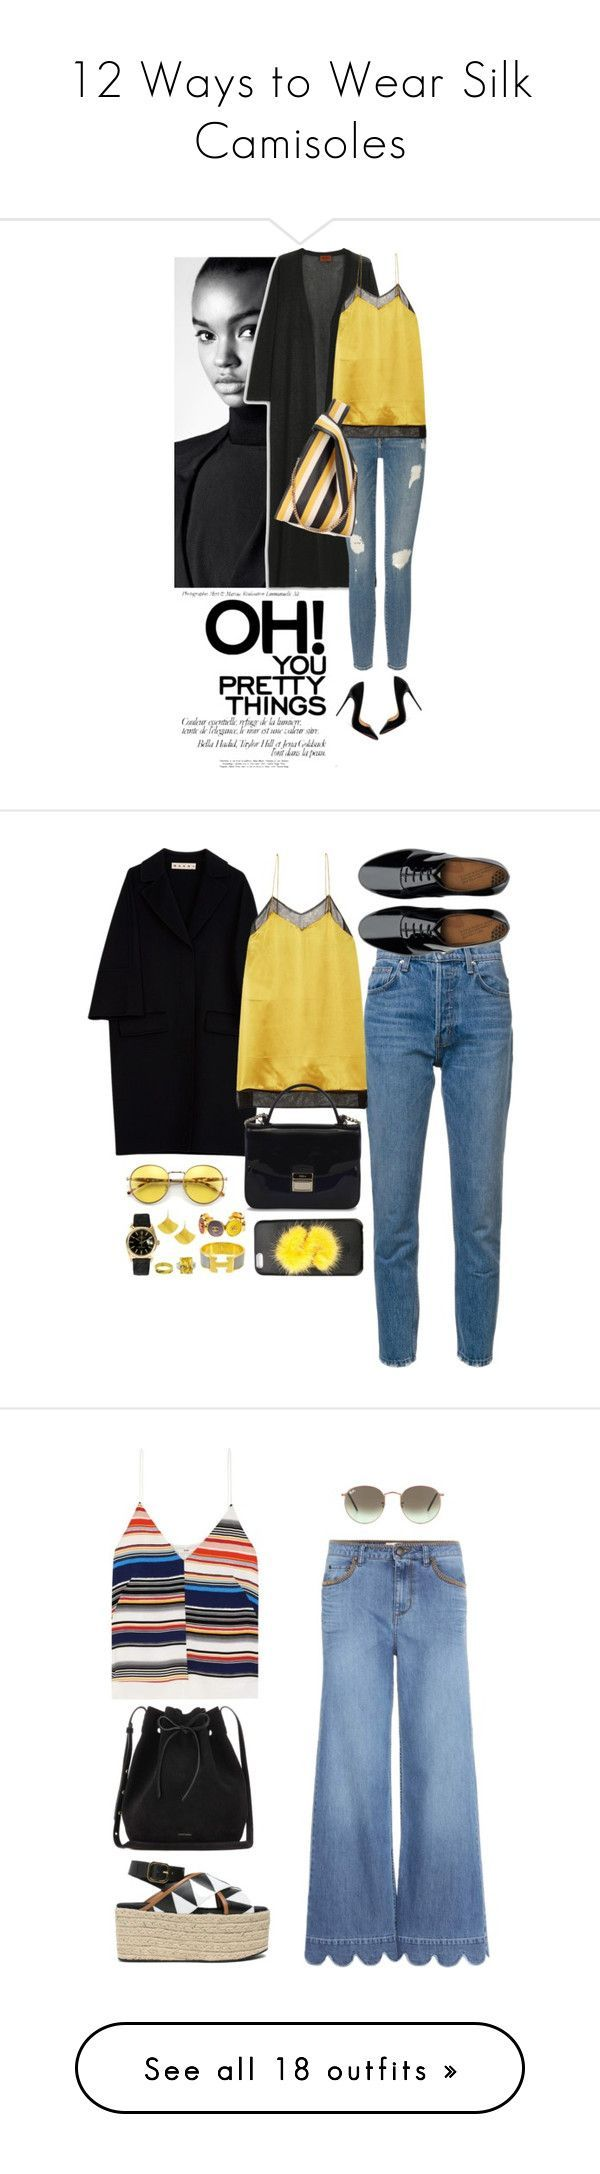 """""""12 Ways to Wear Silk Camisoles"""" by polyvore-editorial ❤ liked on Polyvore featuring waystowear, silkcamisoles, Christian Louboutin, Missoni, Frame, Gucci, STELLA McCARTNEY, Marni, 10 Crosby Derek Lam and FitFlop - lingerie sites, lingerie pas cher, females in lingerie *ad"""